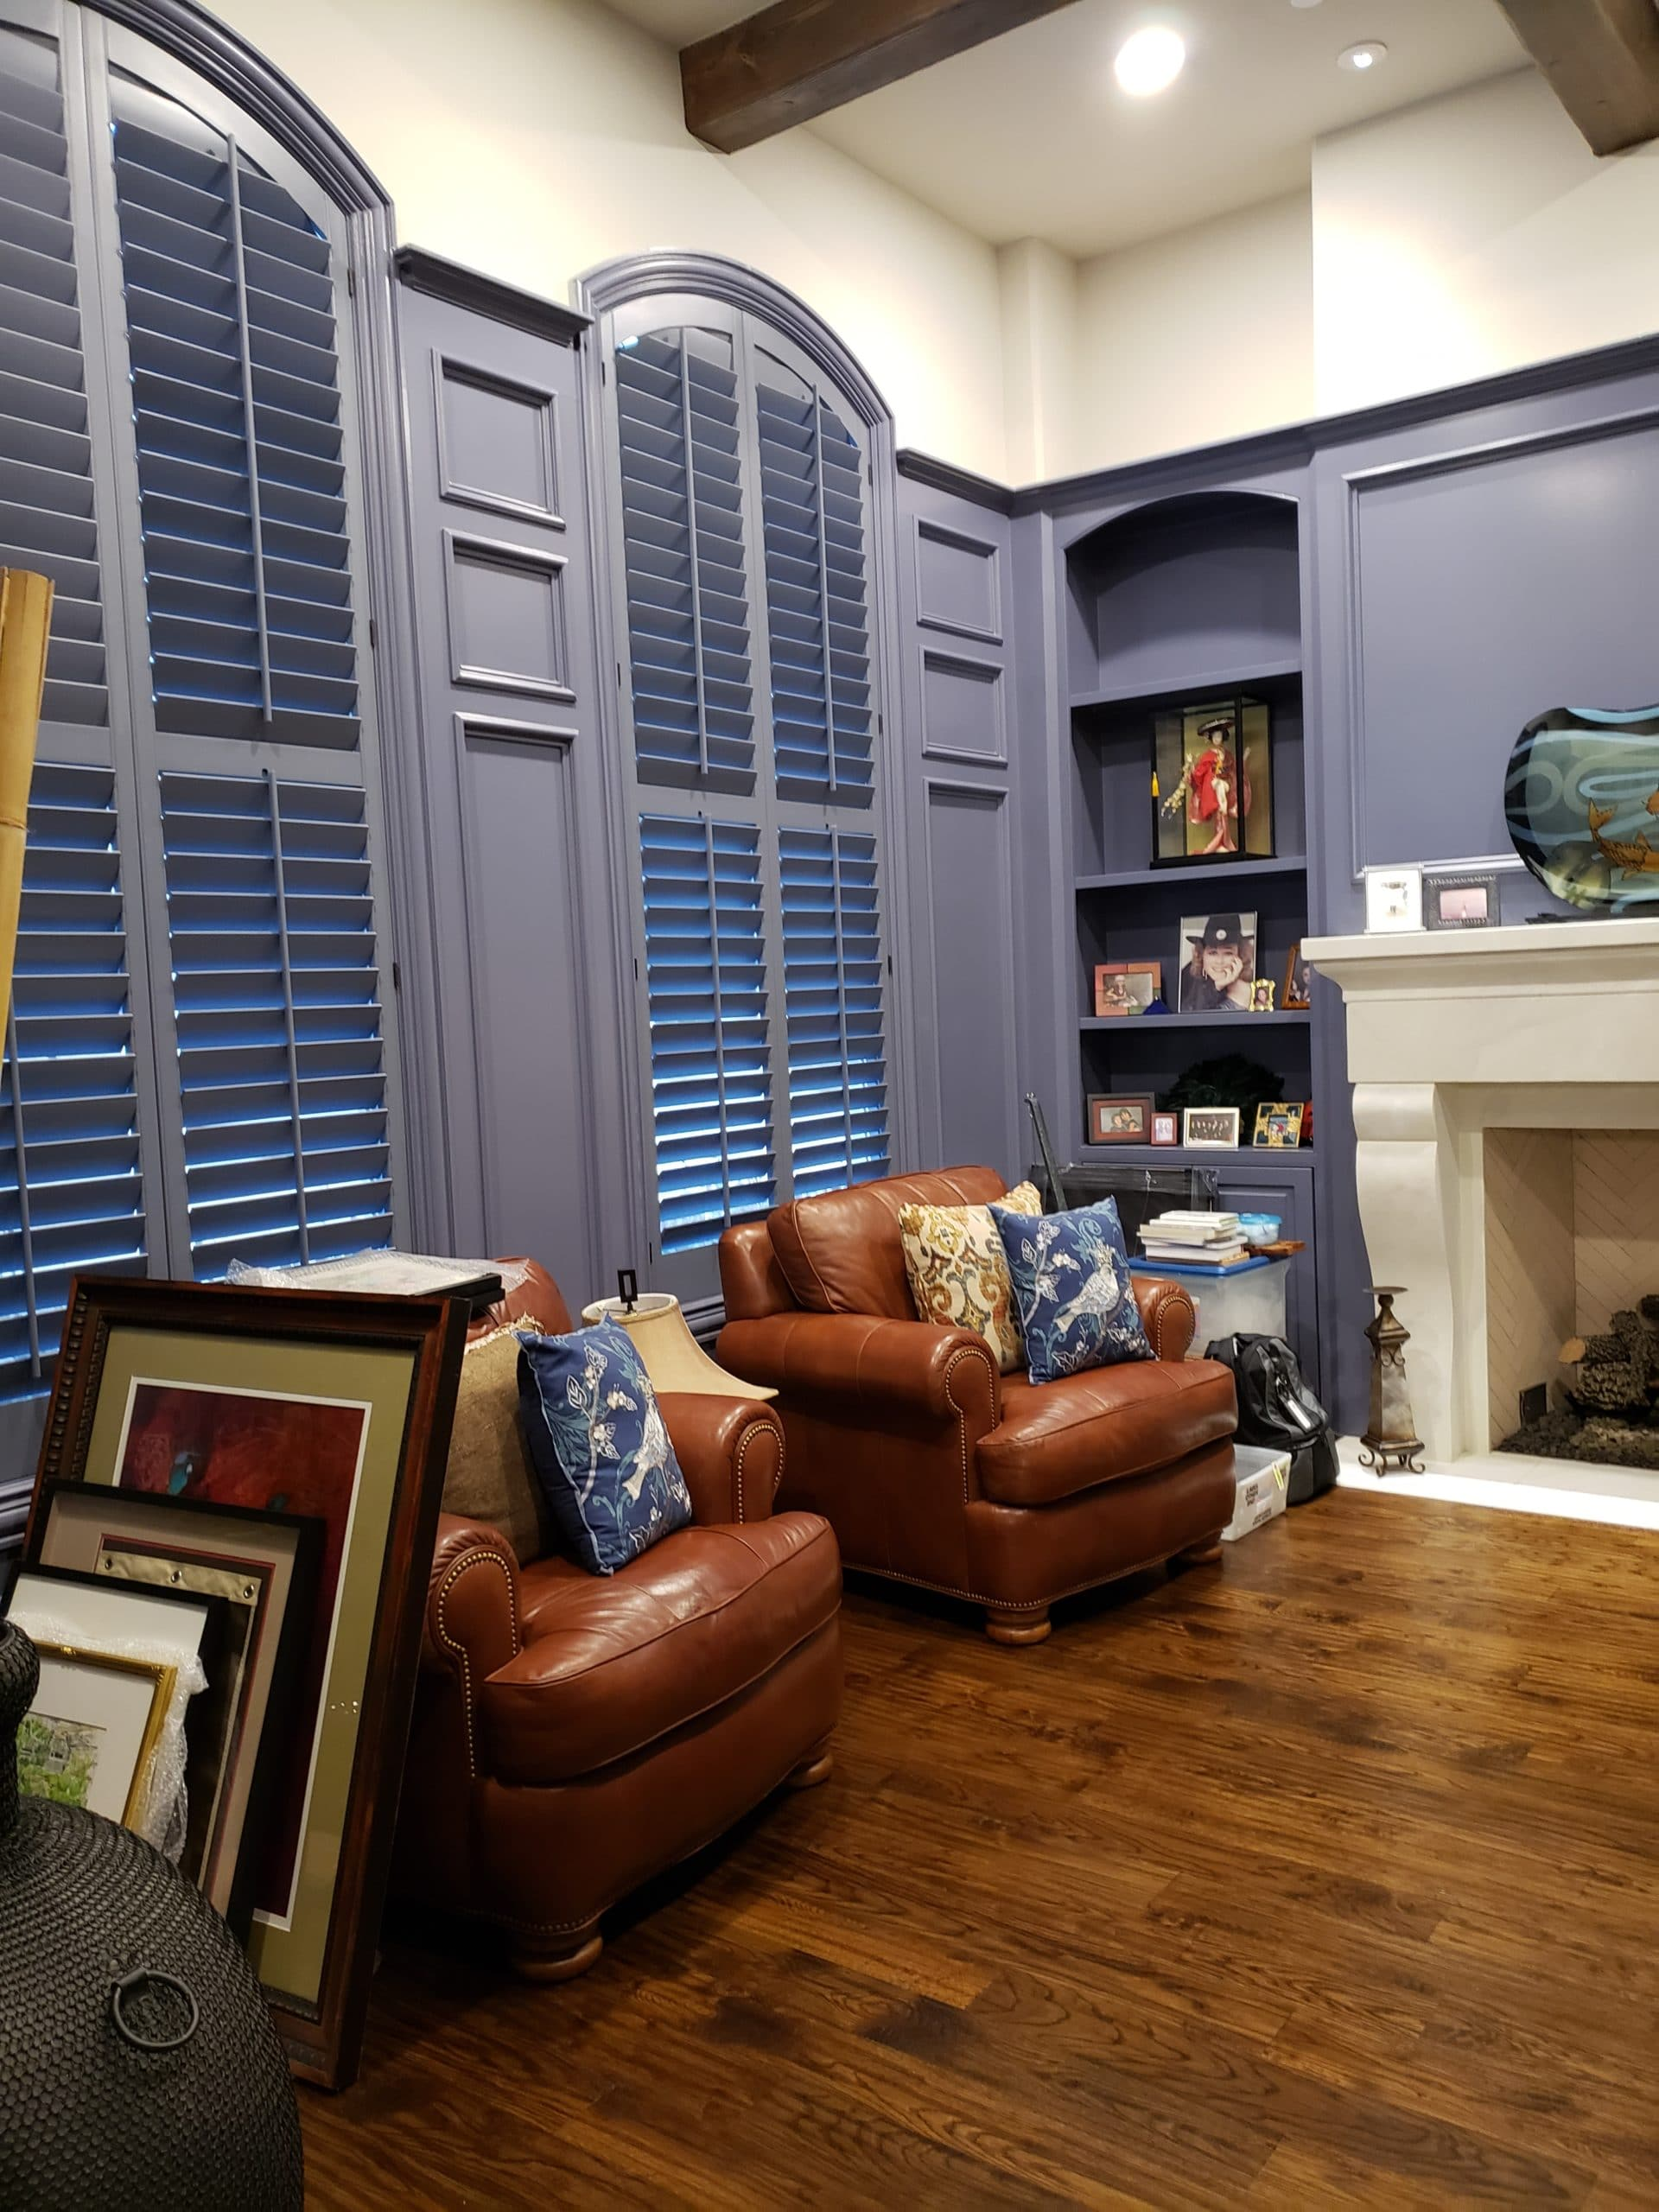 2020 Study room ideas, modern Study room ideas, Study room ideas, dkorhome, Dallas Designers, neutral home office ideas with colorful accents interior design blog, D'KOR HOME by Dee Frazier Interiors, Interior Designers Near Me, Dallas TX, Dallas interior decorators, Dallas interior designers, Plano interior decorator, allen interior decorator, allen interior designer, frisco interior designer, frisco interior decorator, dallas home designer, award winning interior designer, asid dallas, color interiors spring, interior design dallas, interior decorator dallas, dallas interior design firms, interior design dallas texas, texas interior design, residential interior design firms dallas, dallas interior design service, granite interiors dallas